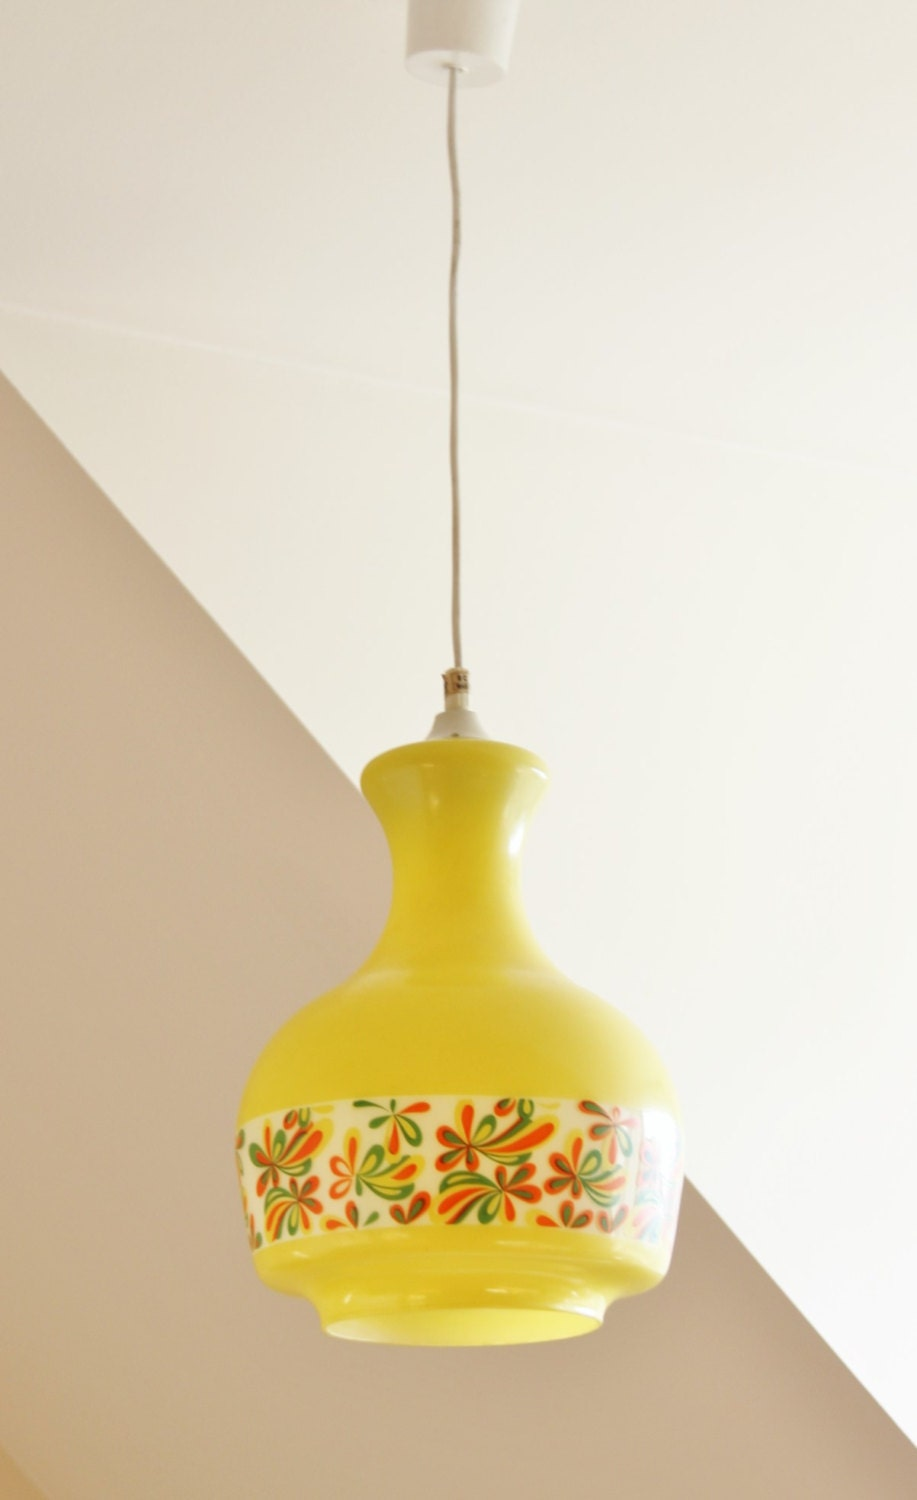 Daisy Yellow White Pendant Lighting 70s Psychedelic Pop